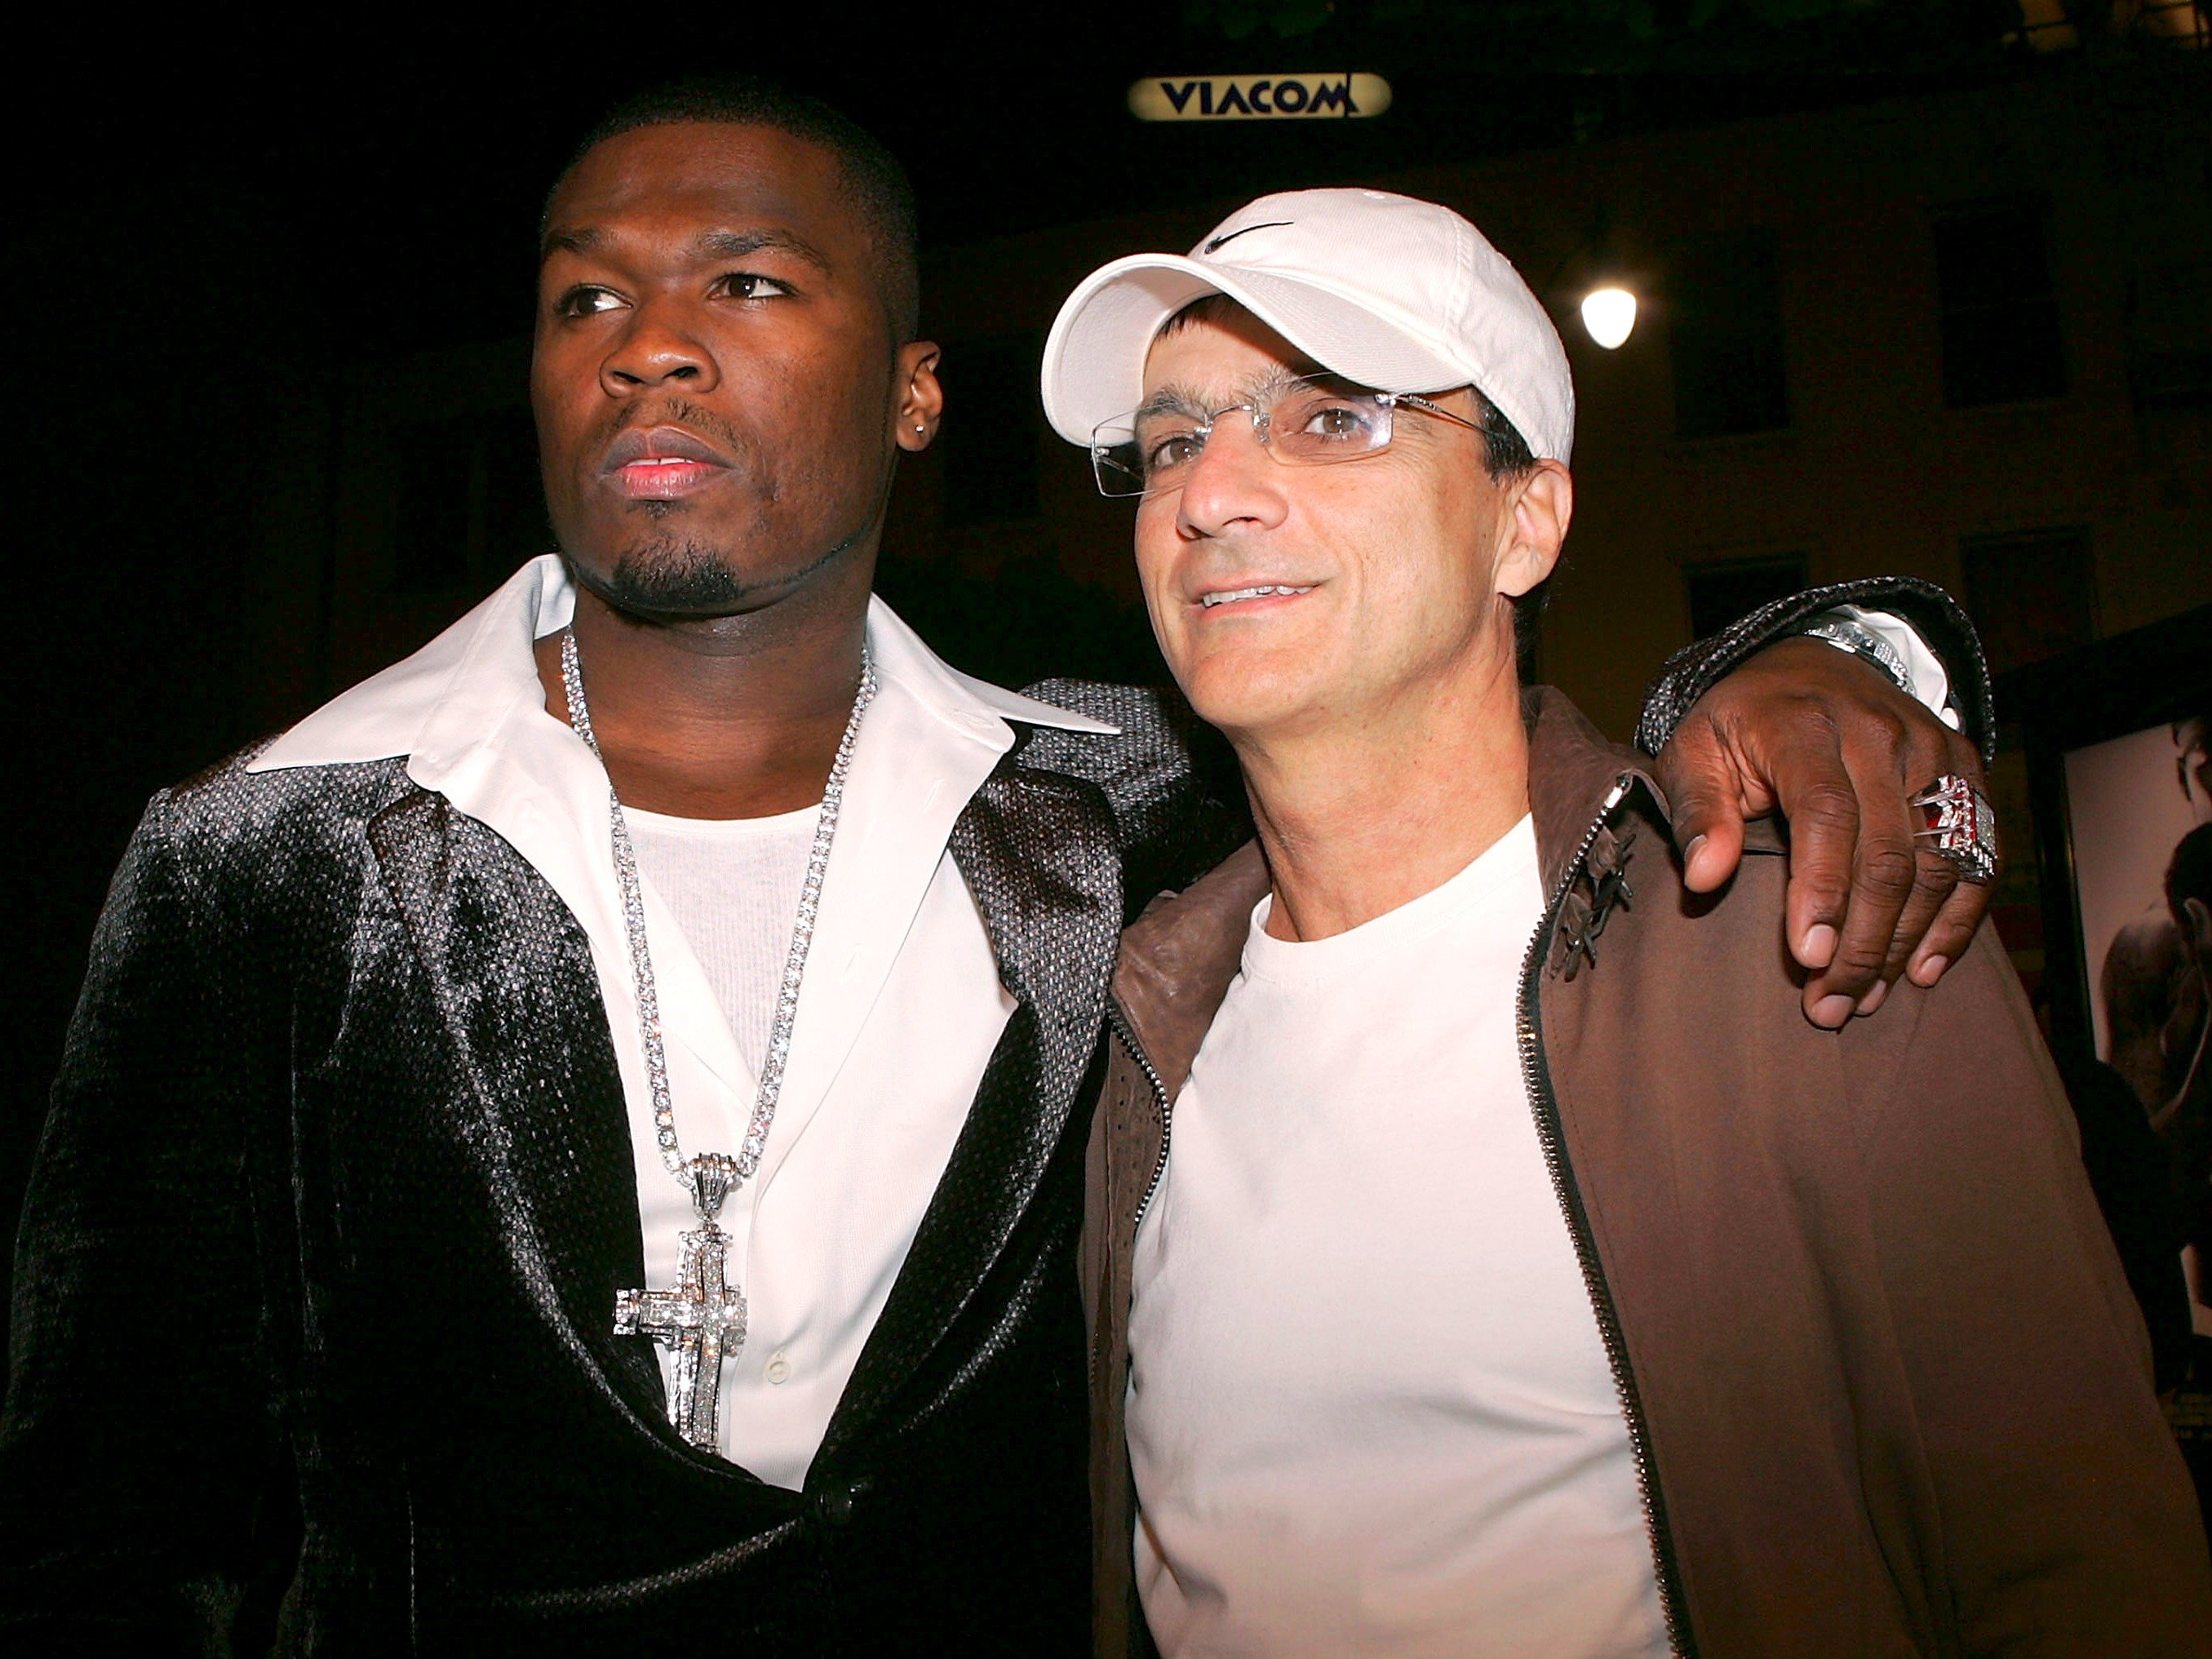 50 Cent and Interscope Records founder Jimmy Iovine in 2005